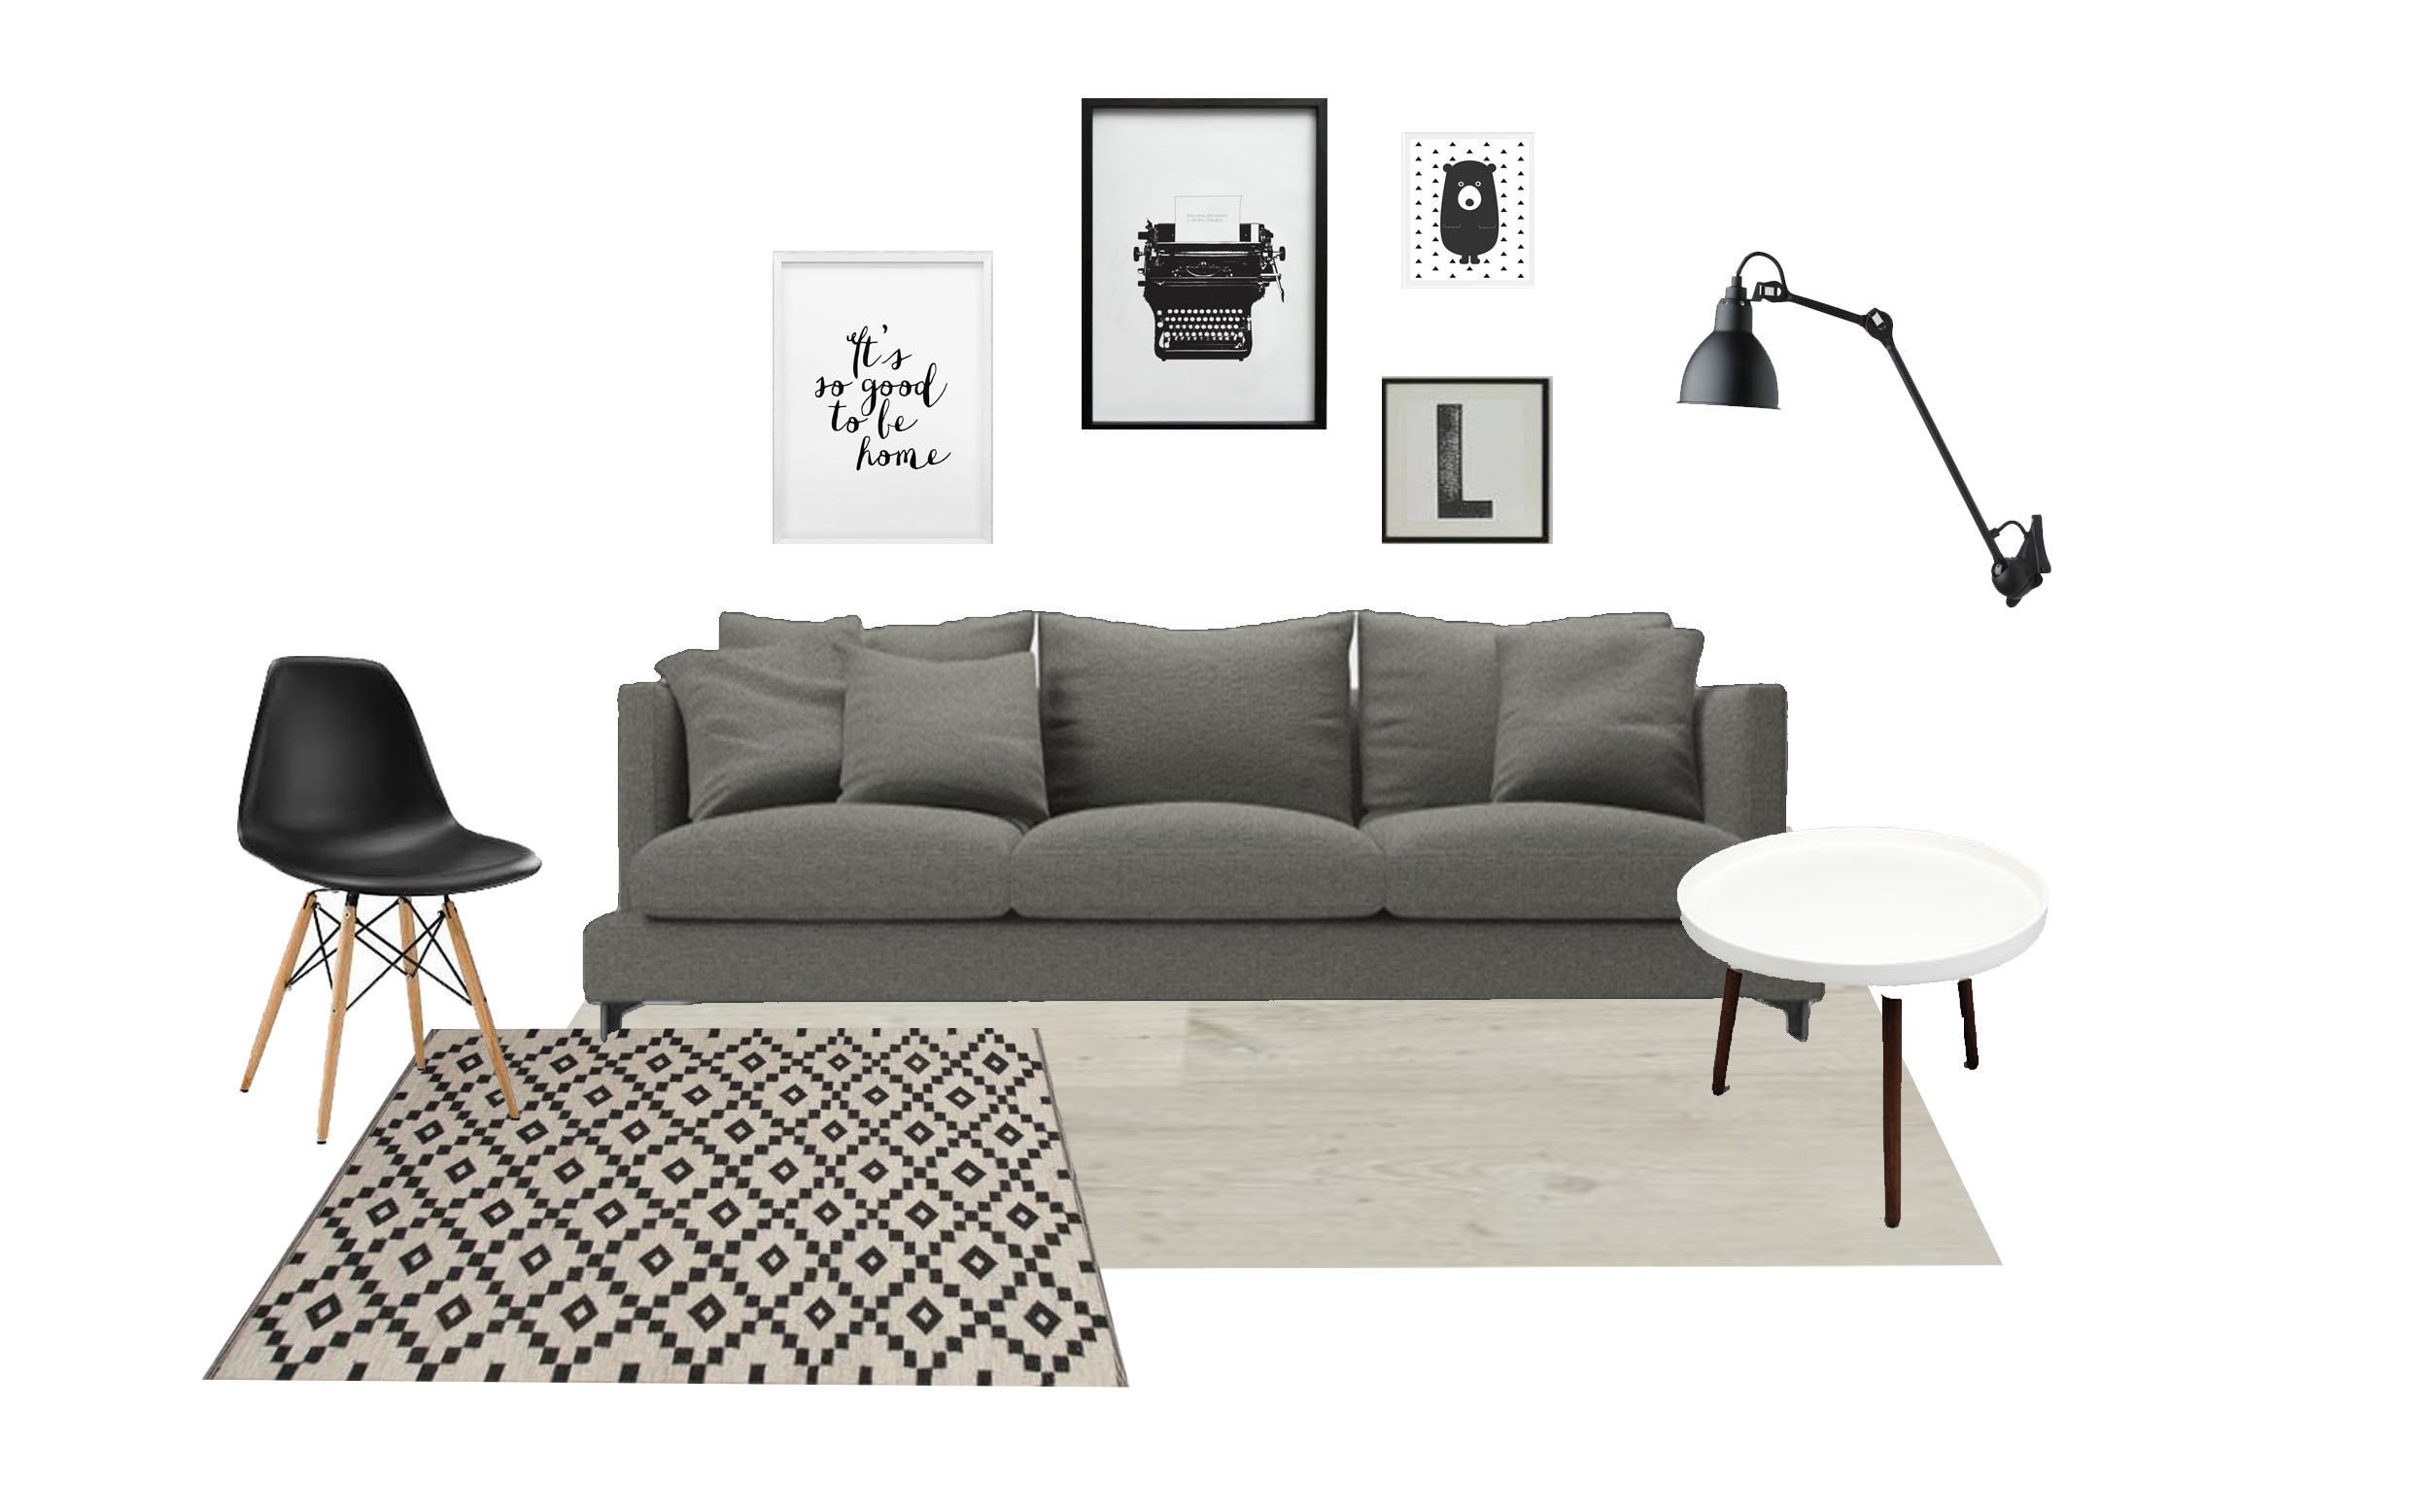 Lazytime plus sofa camerich -  Sofa Ranges Lazytime Plus In Graphite To See How Versatile It Can Be When Mixed With Different Accessories And Colours Take A Look At Our Moodboards